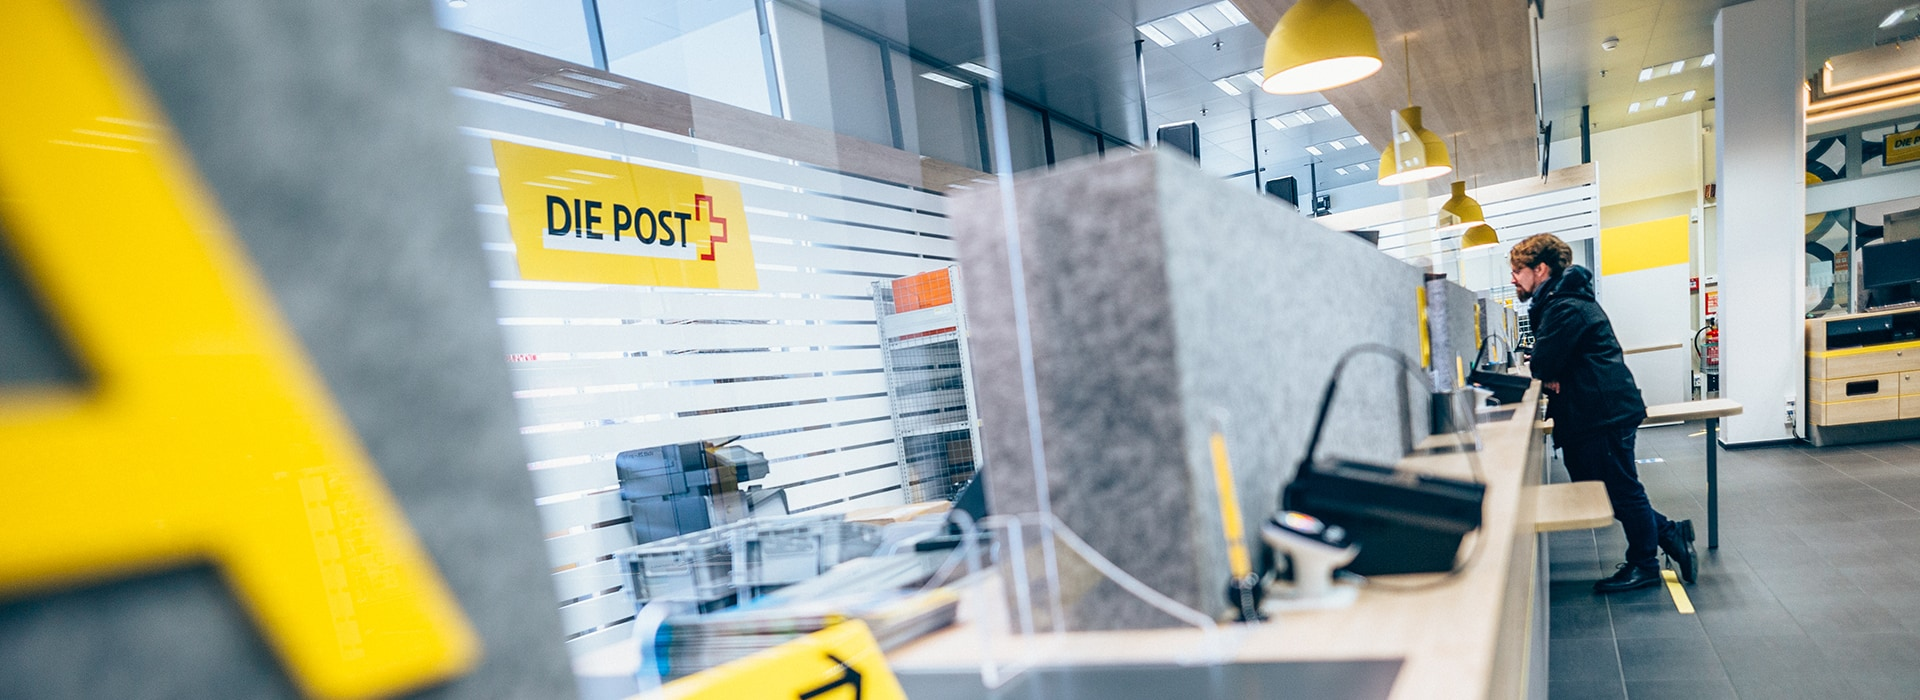 Innenansicht der Post im Emmen Center